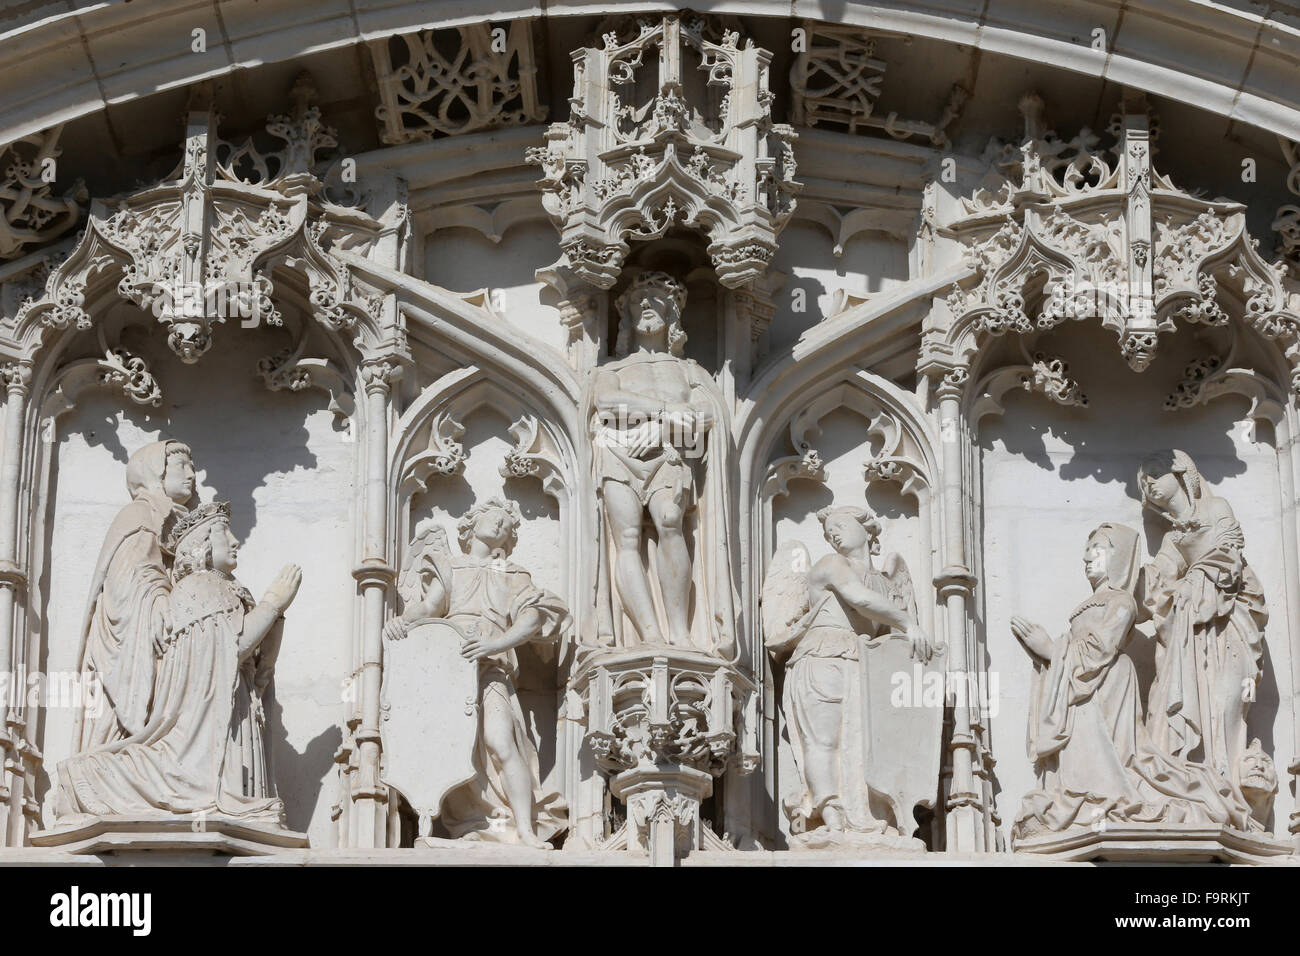 The royal monastery of Brou.  The church is a masterpiece of the Flamboyant Gothic style. Western portal. - Stock Image